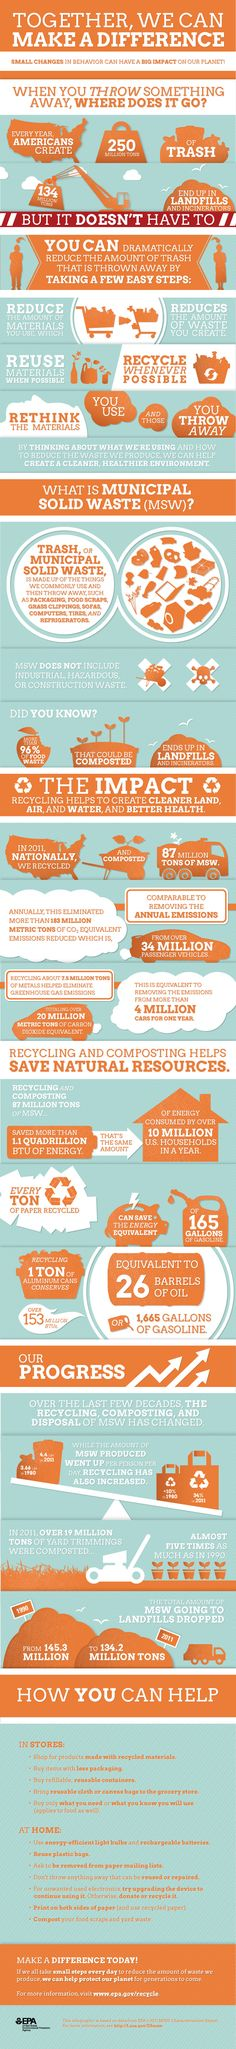 EPA Infographic detailing what Americans throw away, and how waste reduction and recycling can reduce energy use and greenhouse gas emissions.